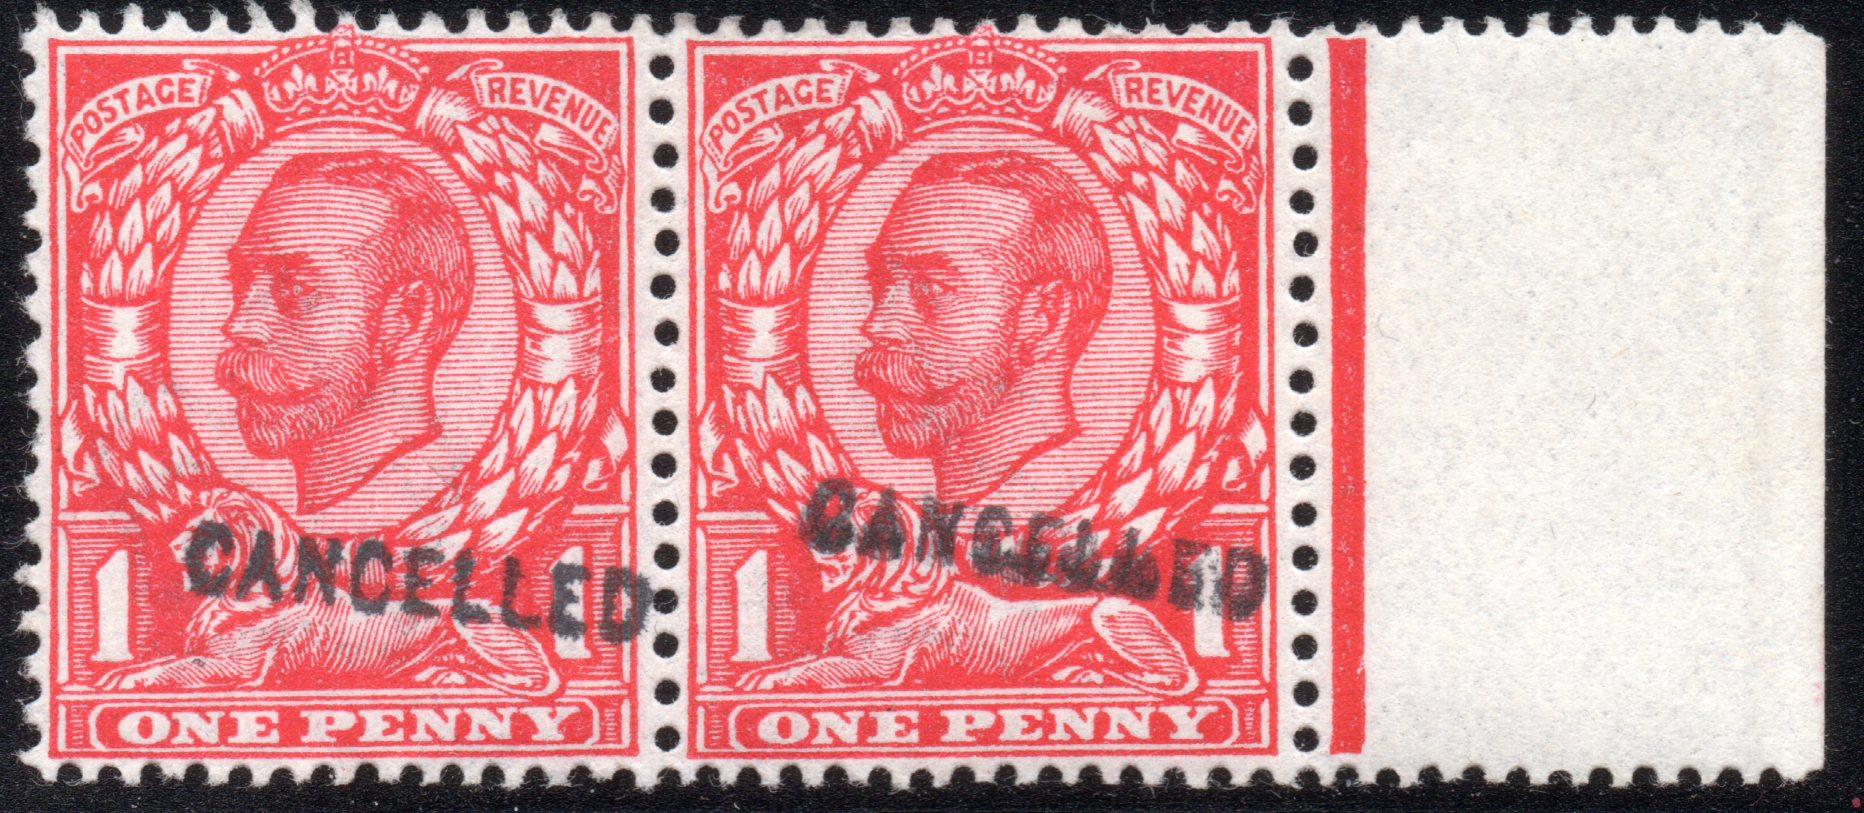 1912 1d Scarlet Marginal Pair CANCELLED Type 24